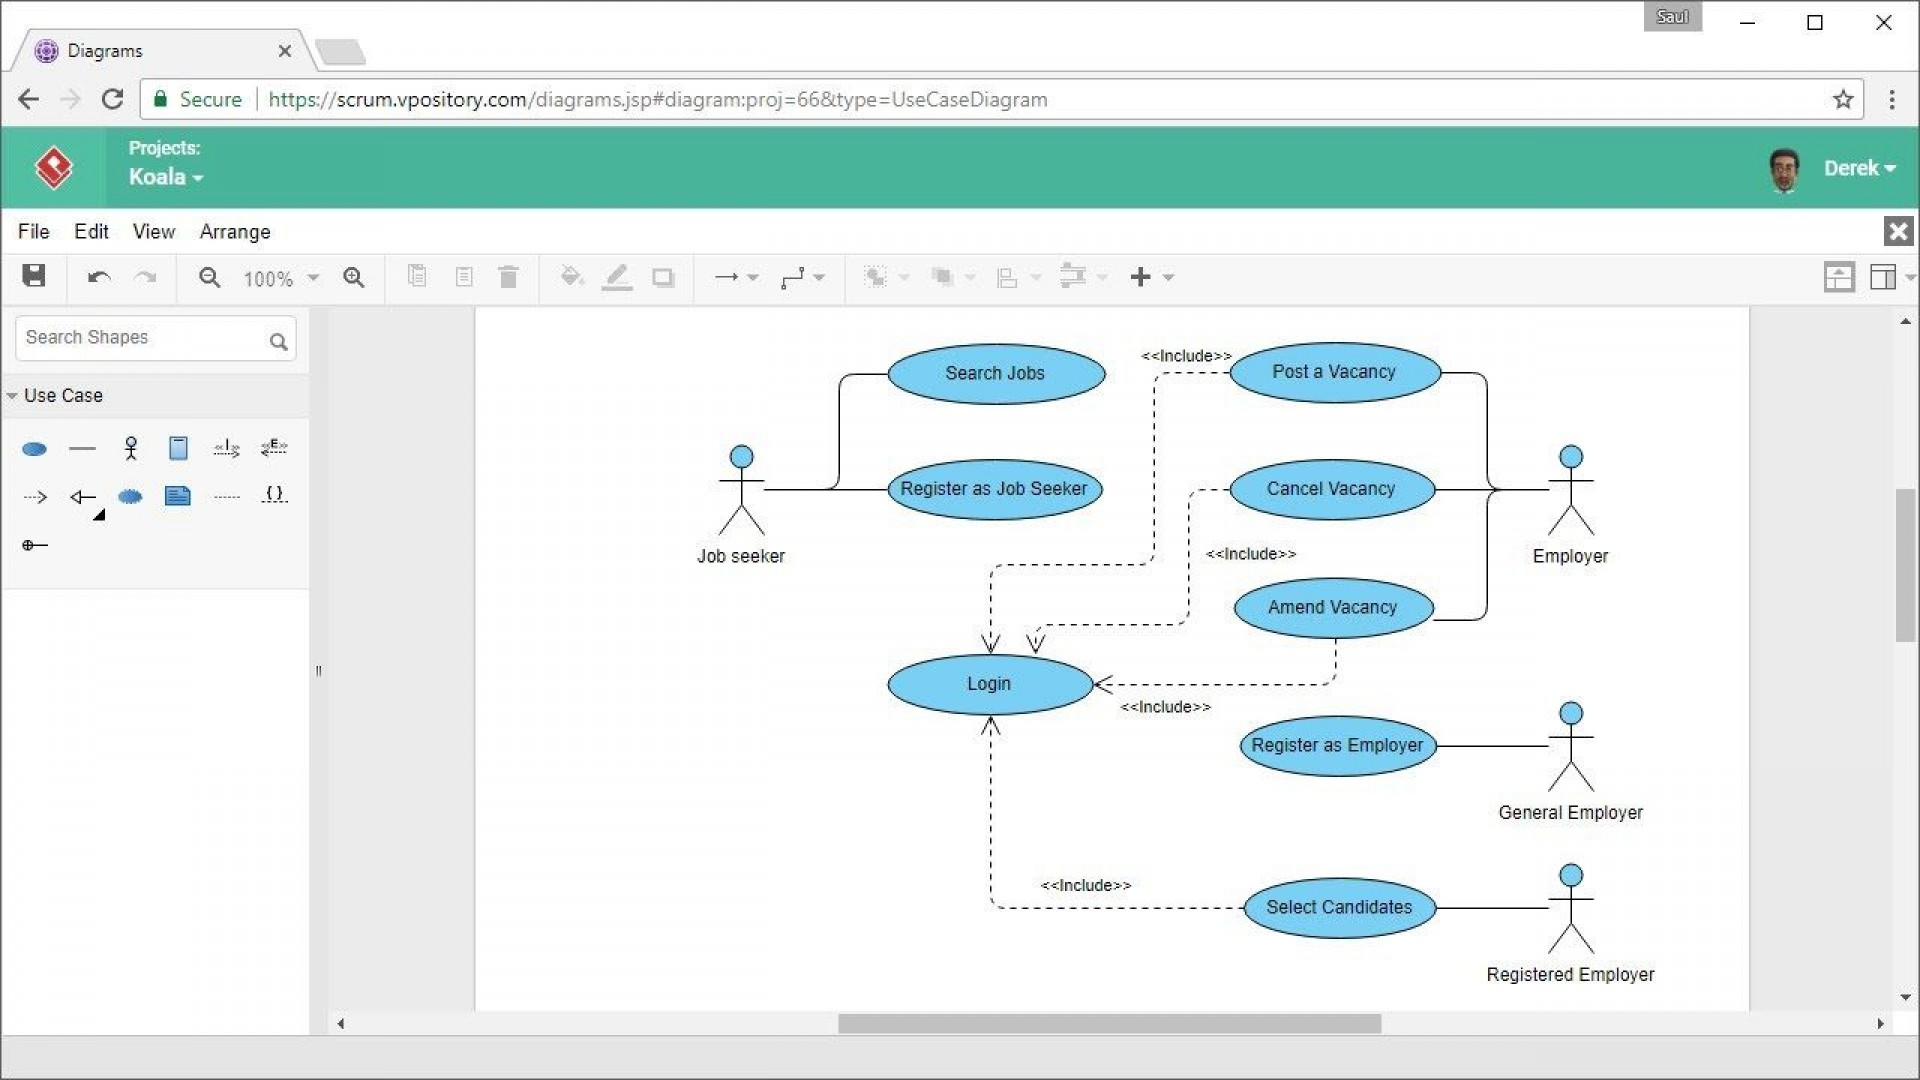 001 Excellent Microsoft Word Use Case Diagram Template Picture 1920